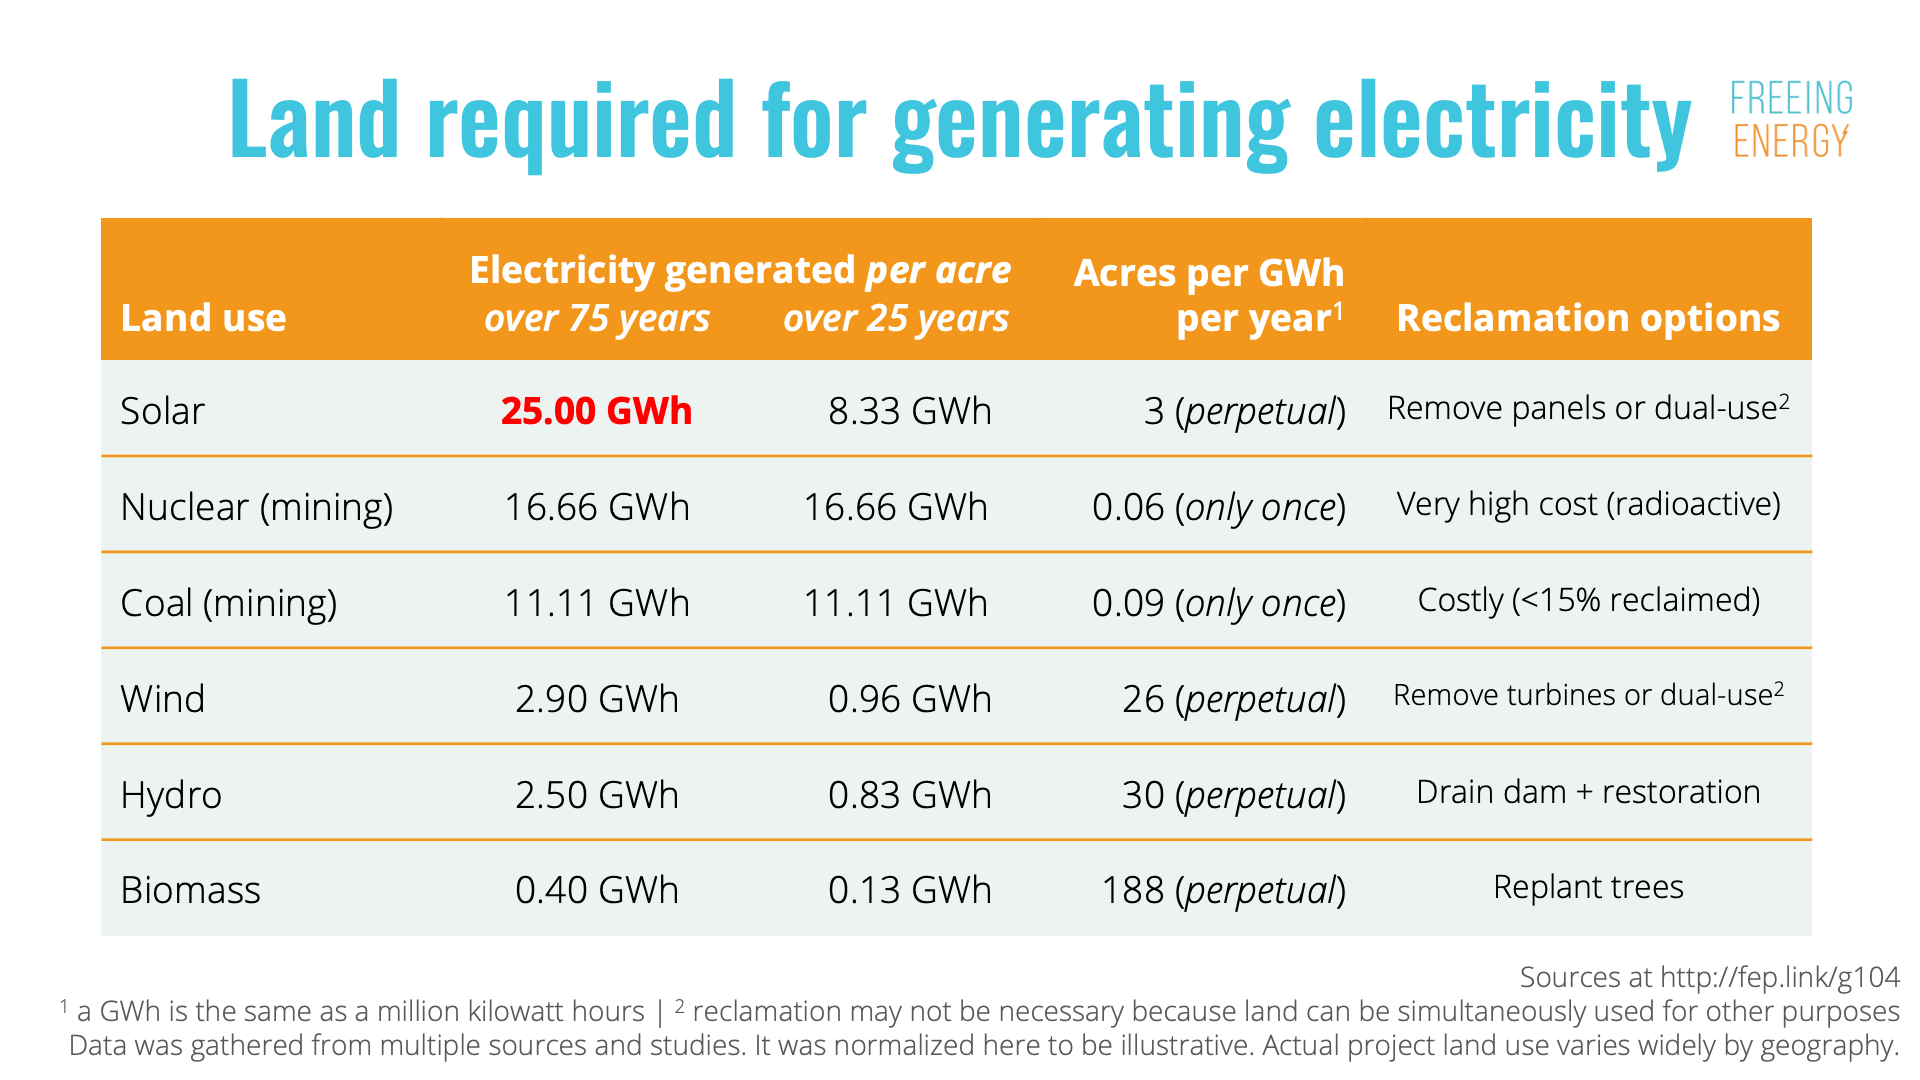 Land Required for Generating Electricity